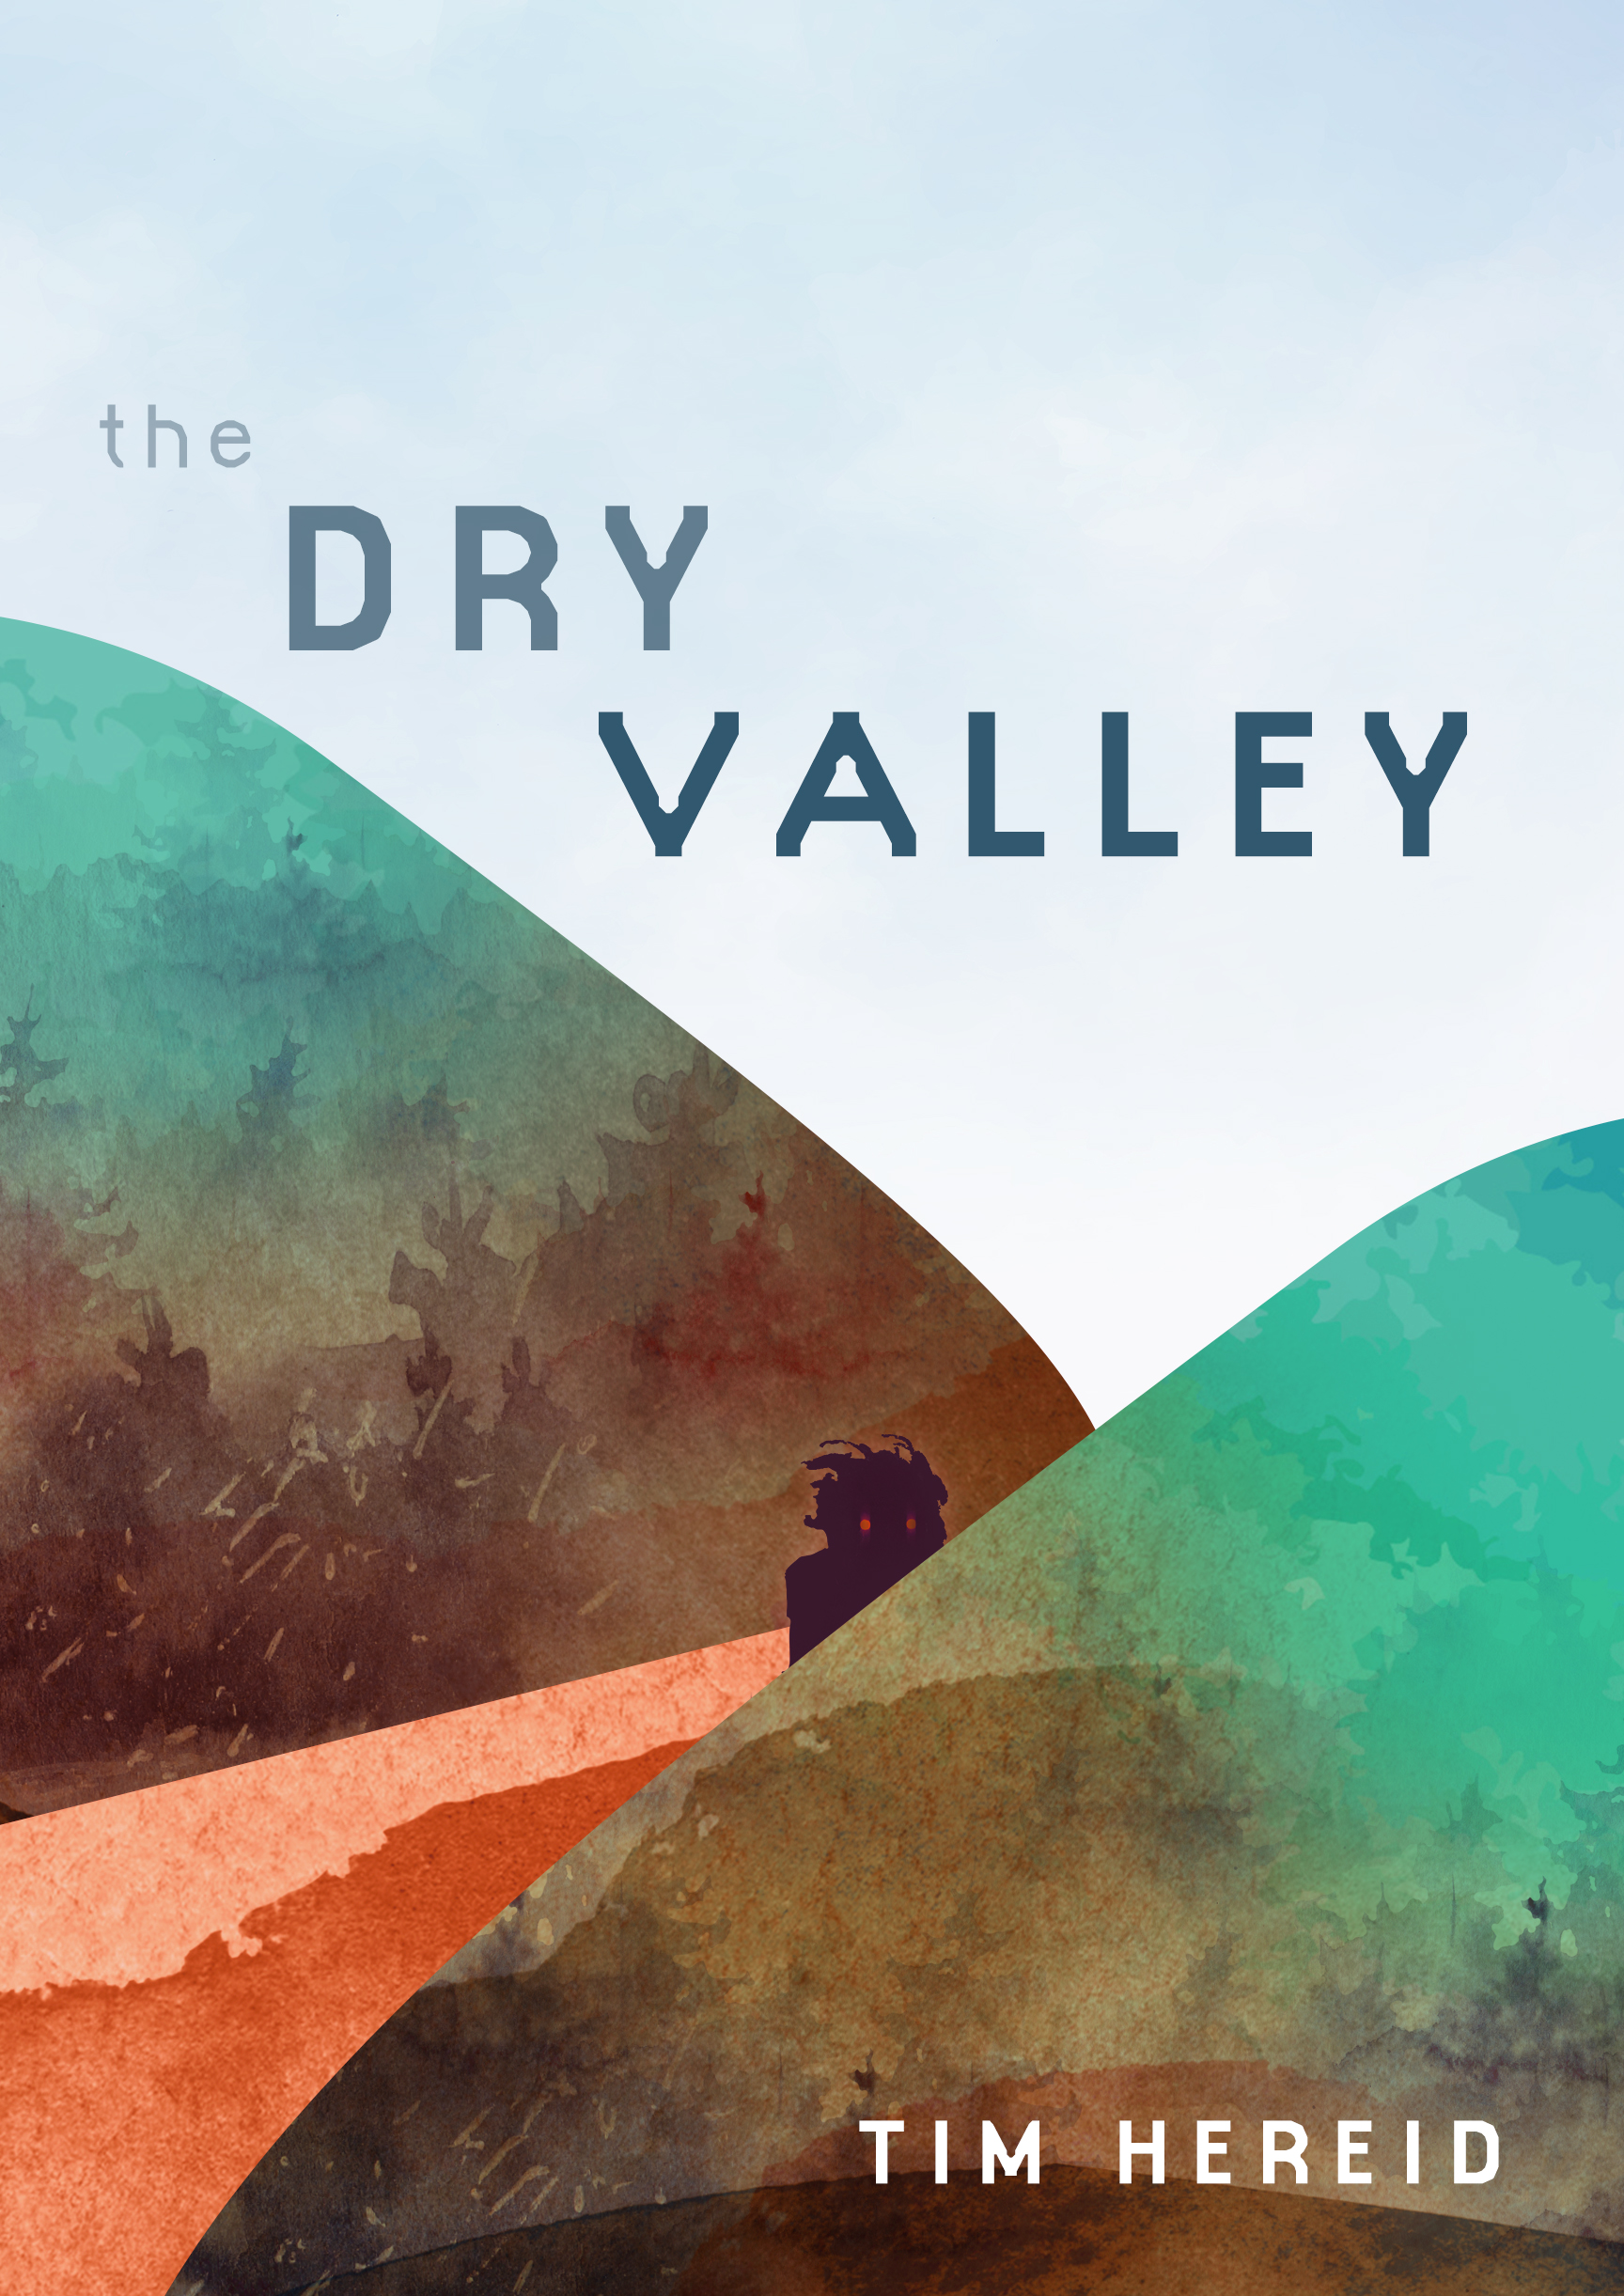 The Dry Valley - ON TUESDAY, CALLIOPE RUBY BAKER saw the monster for the first time. It stood across the road looking at her. Shaking, she hid behind the curtain by the TV and watched it back. Finally, the monster sunk back into the weeds at the edge of the road, its patchy head vanishing among the chicory. Cali blinked and wondered whether she had seen it at all.Calliope's life is that of any other rural middle schooler except that her grandpa isn't the man he used to be. A year ago, he went quiet. Now Calliope and her grandma live in a house dark and heavy with silence. Then one day a monster appears bearing a truth so startling it will change everything Cali thinks she knows about her grandpa, her family and even herself.